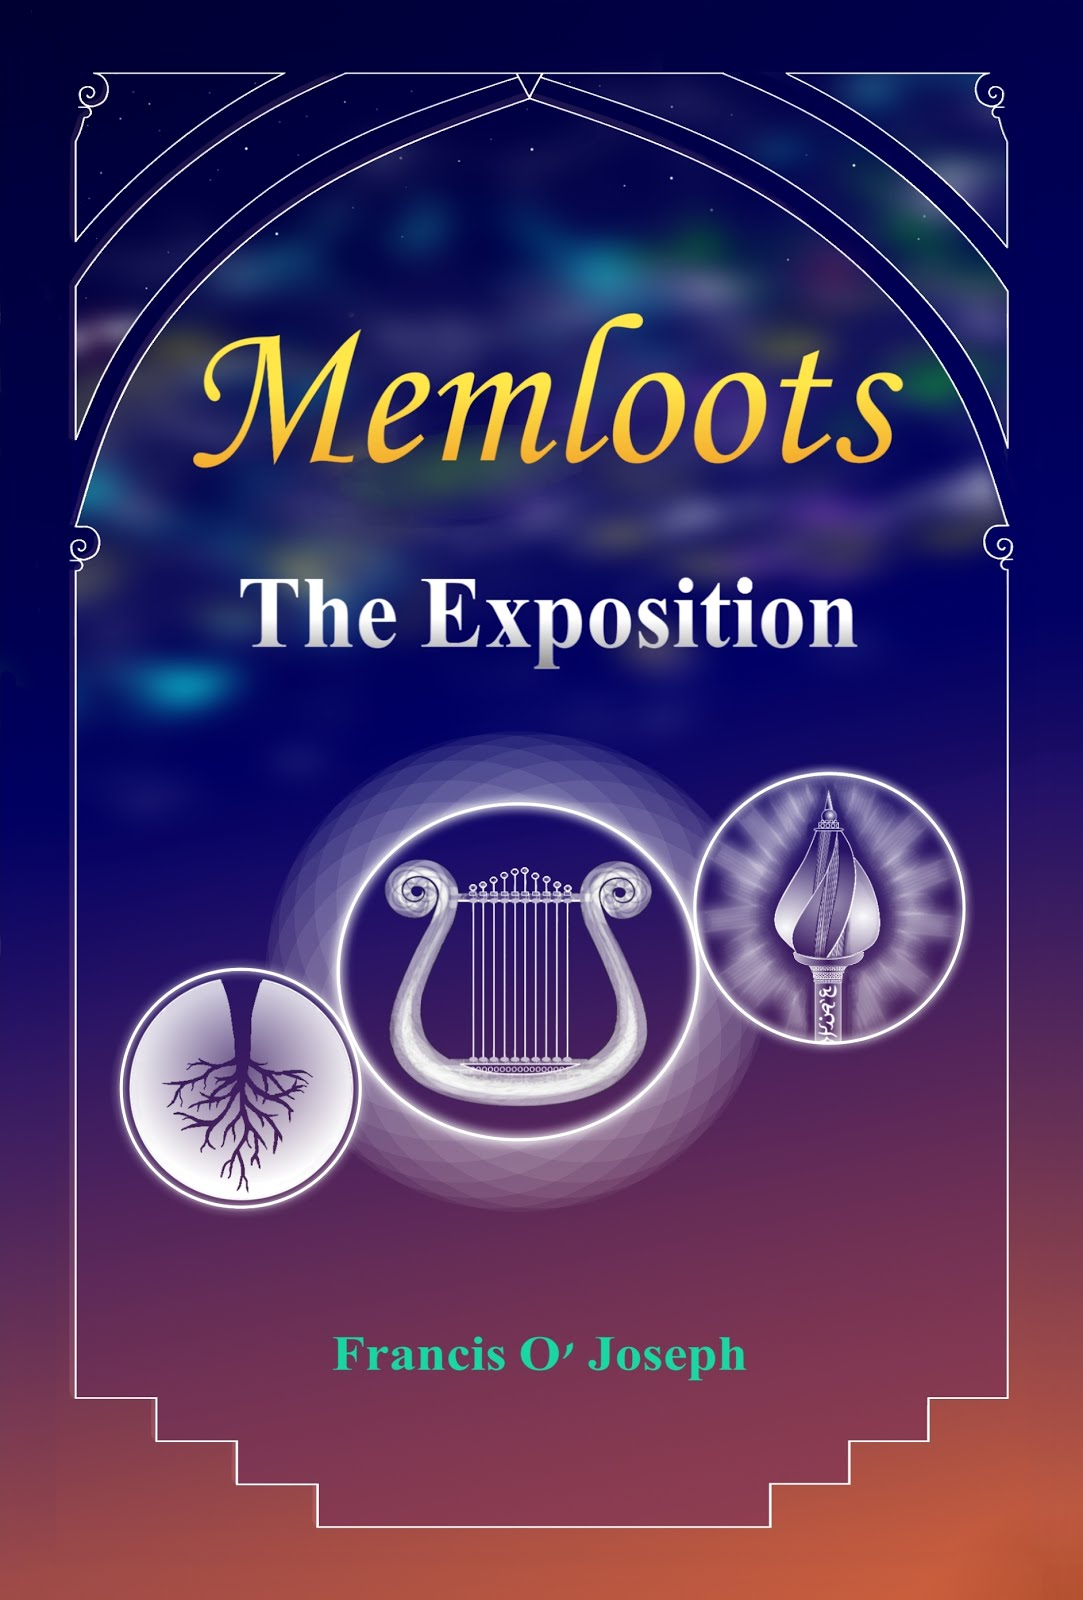 Memloots - The Exposition